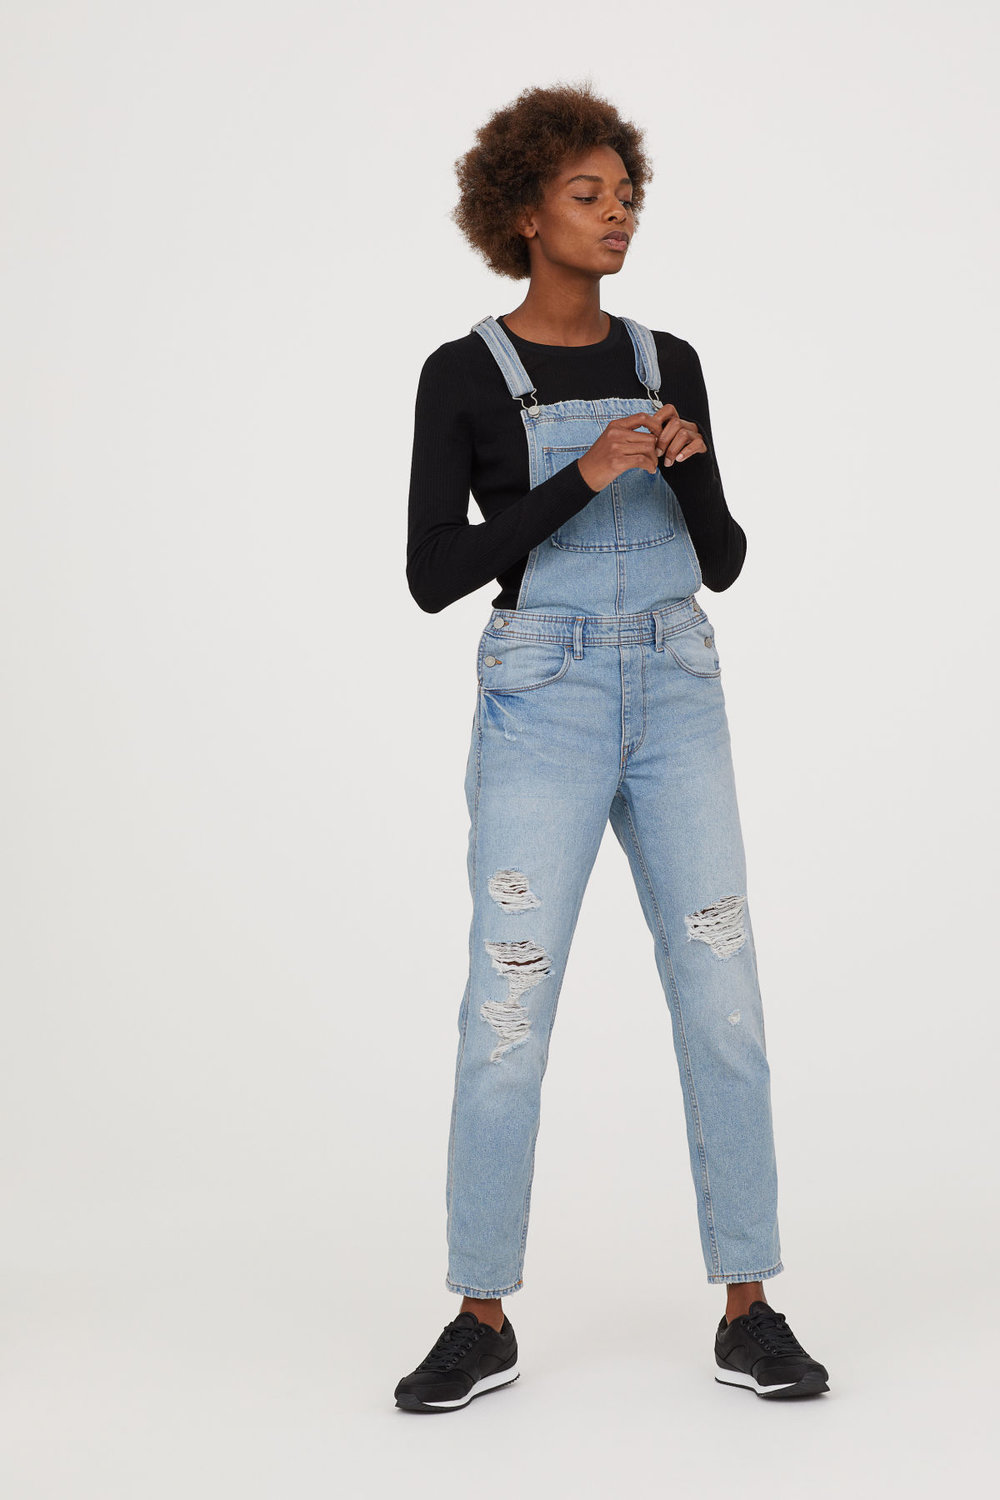 H&M Denim Overalls - $39.99